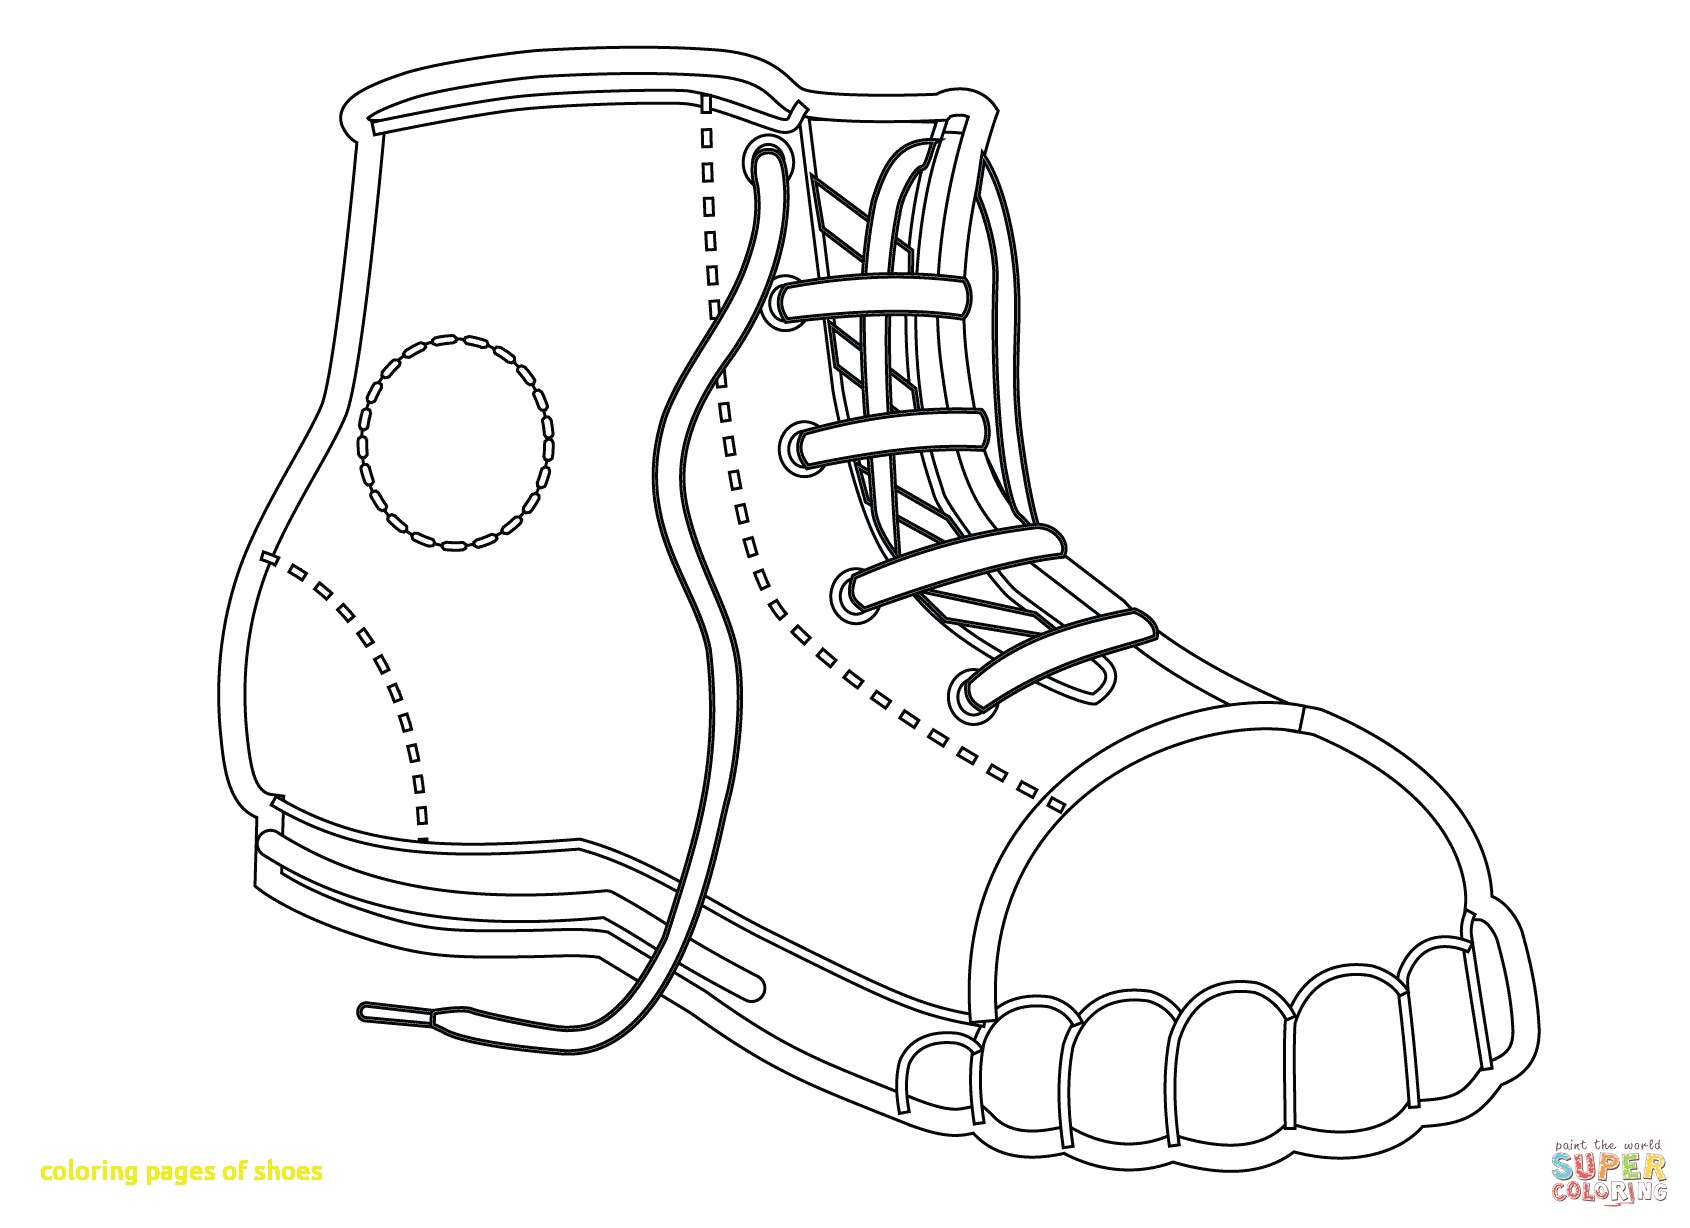 Converse Shoes Drawing at GetDrawings.com | Free for personal use ...